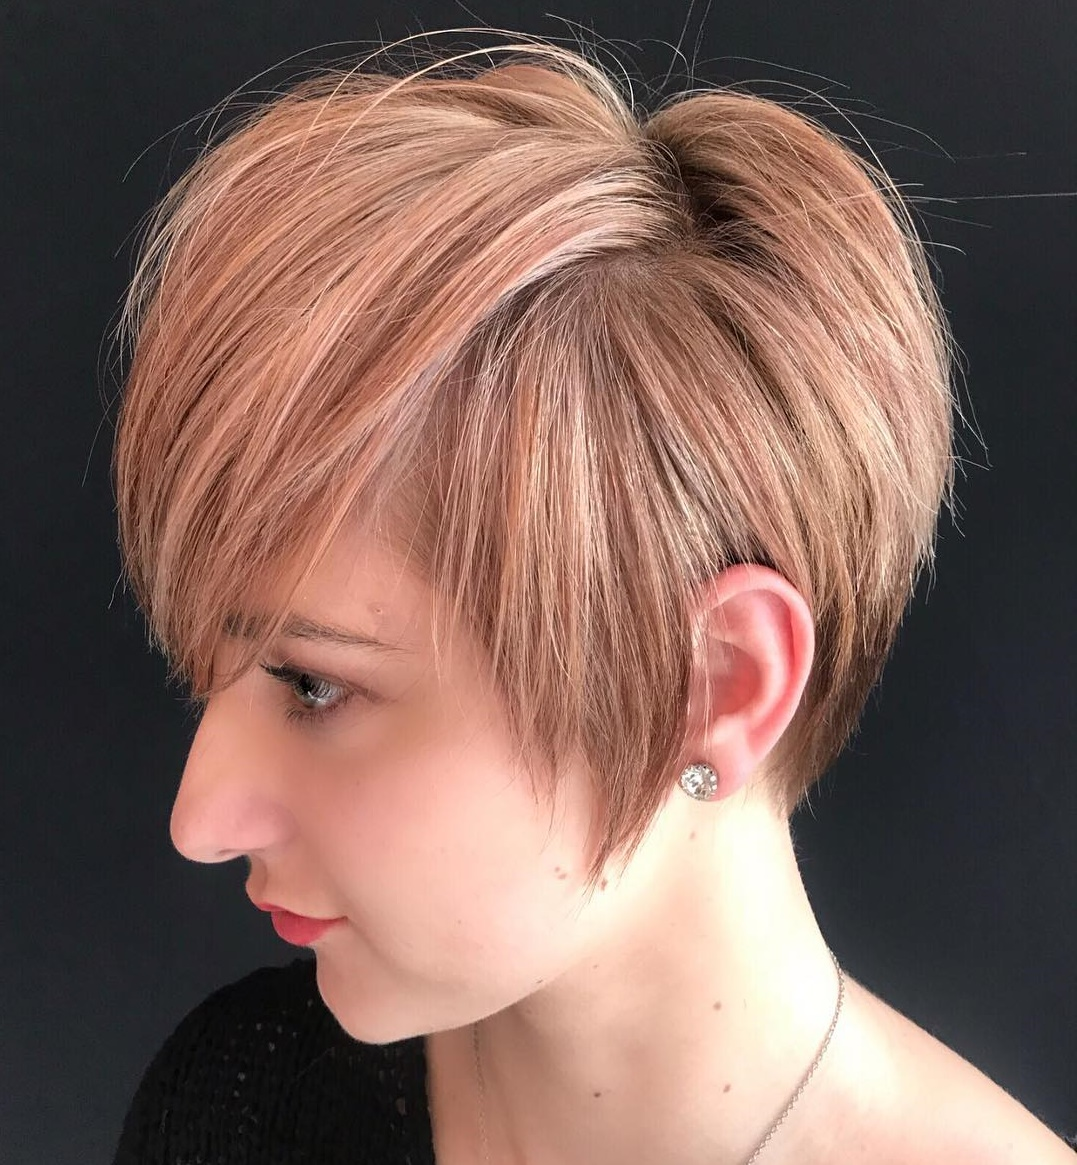 Short Length Thick Haircut with Long Sideburns and Bangs